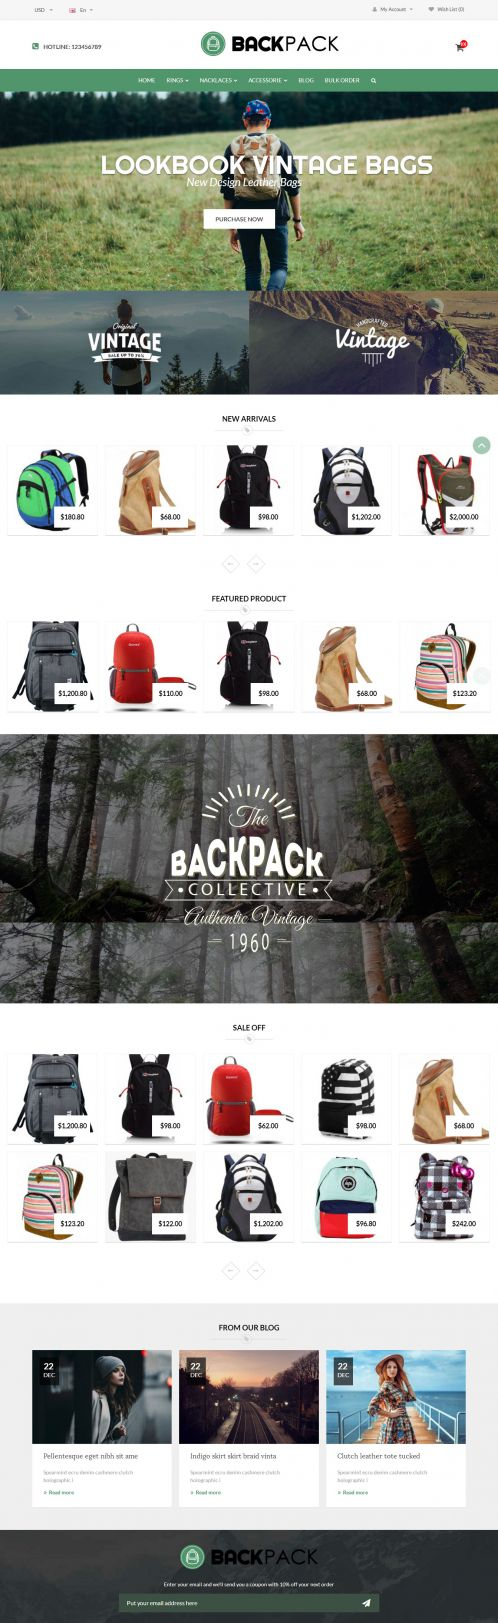 Bossthemes BackPack - Home